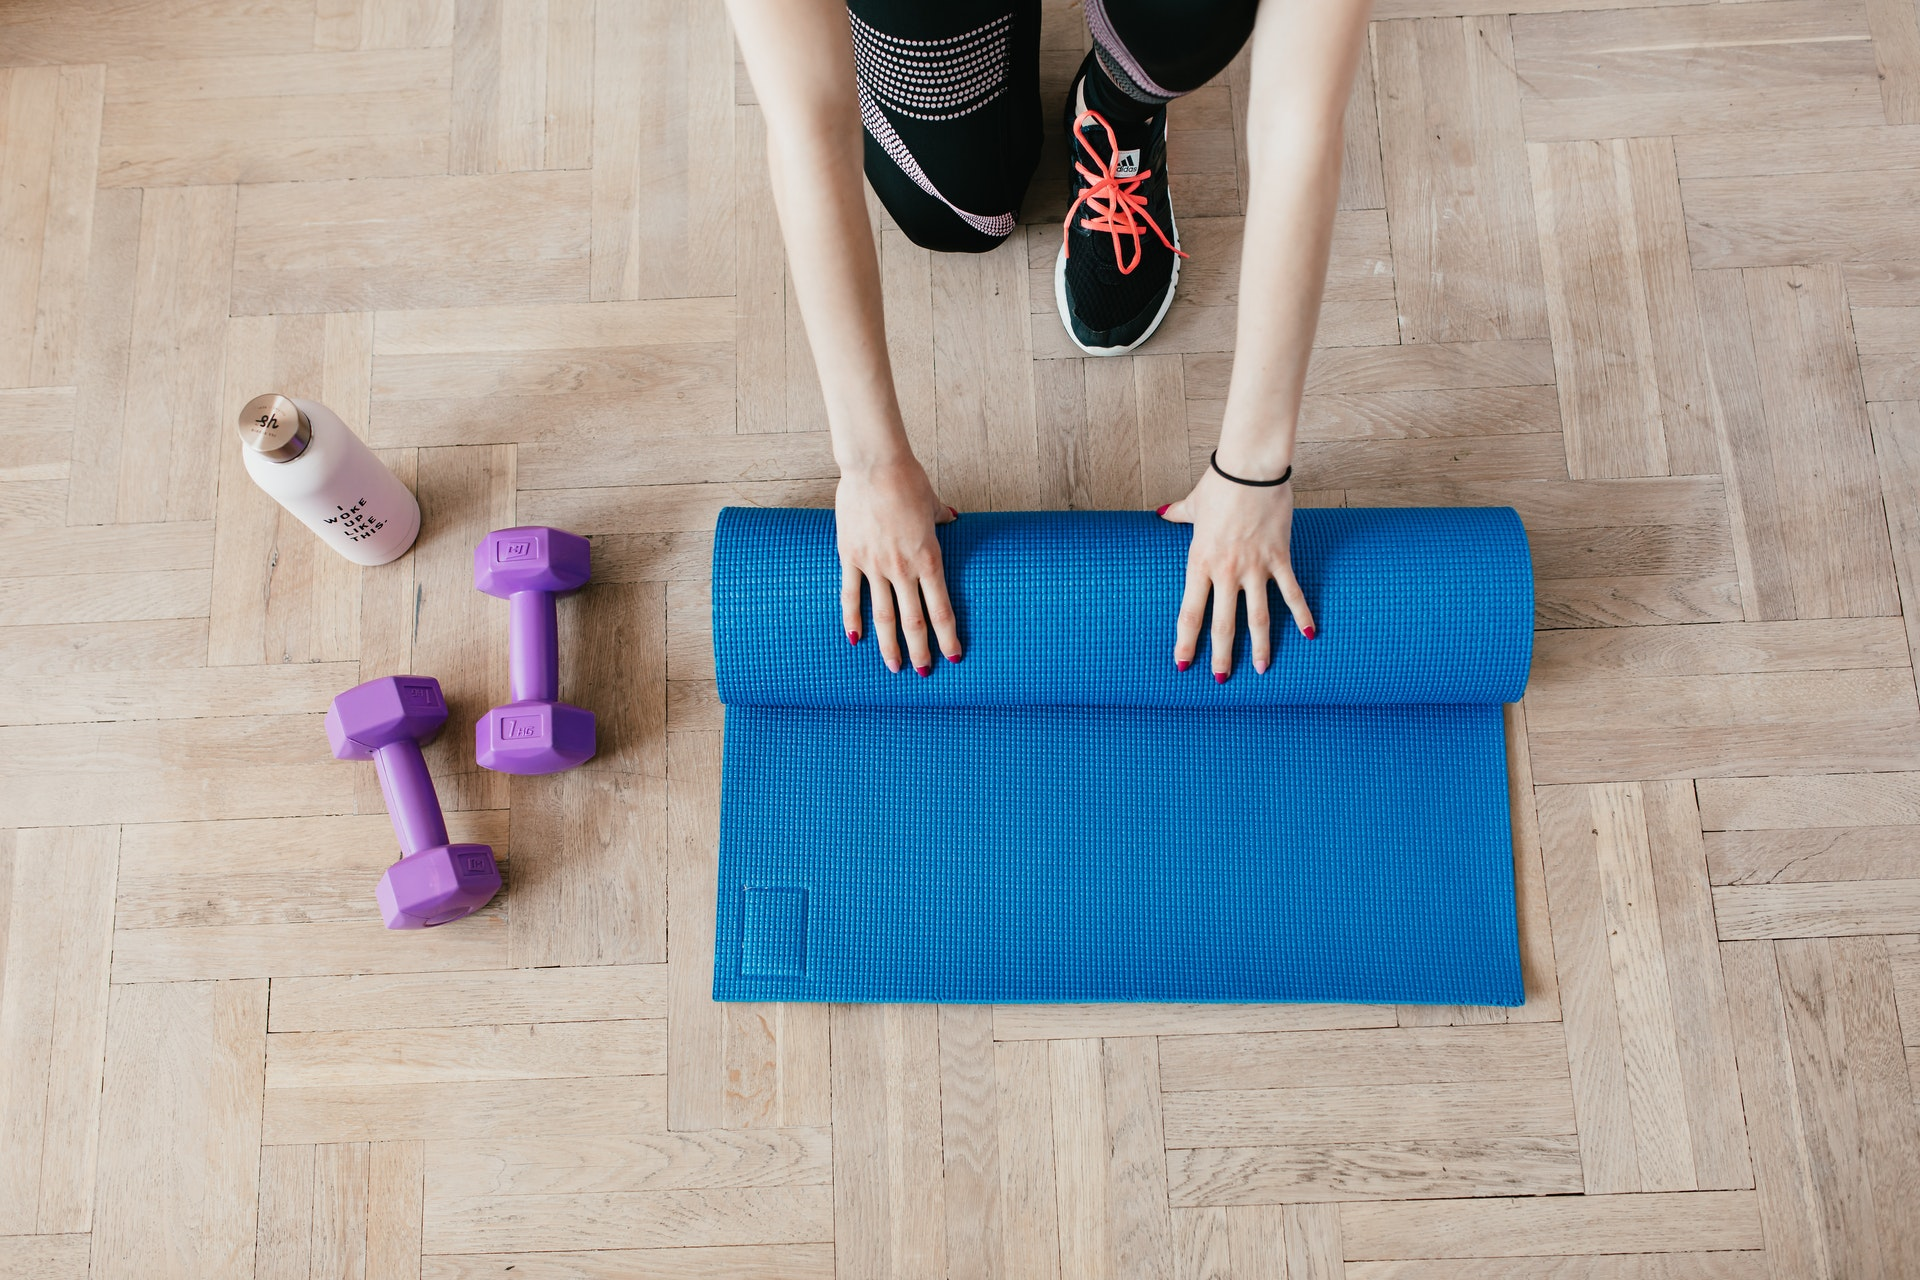 Fitness Blogs: Fact or Fiction?